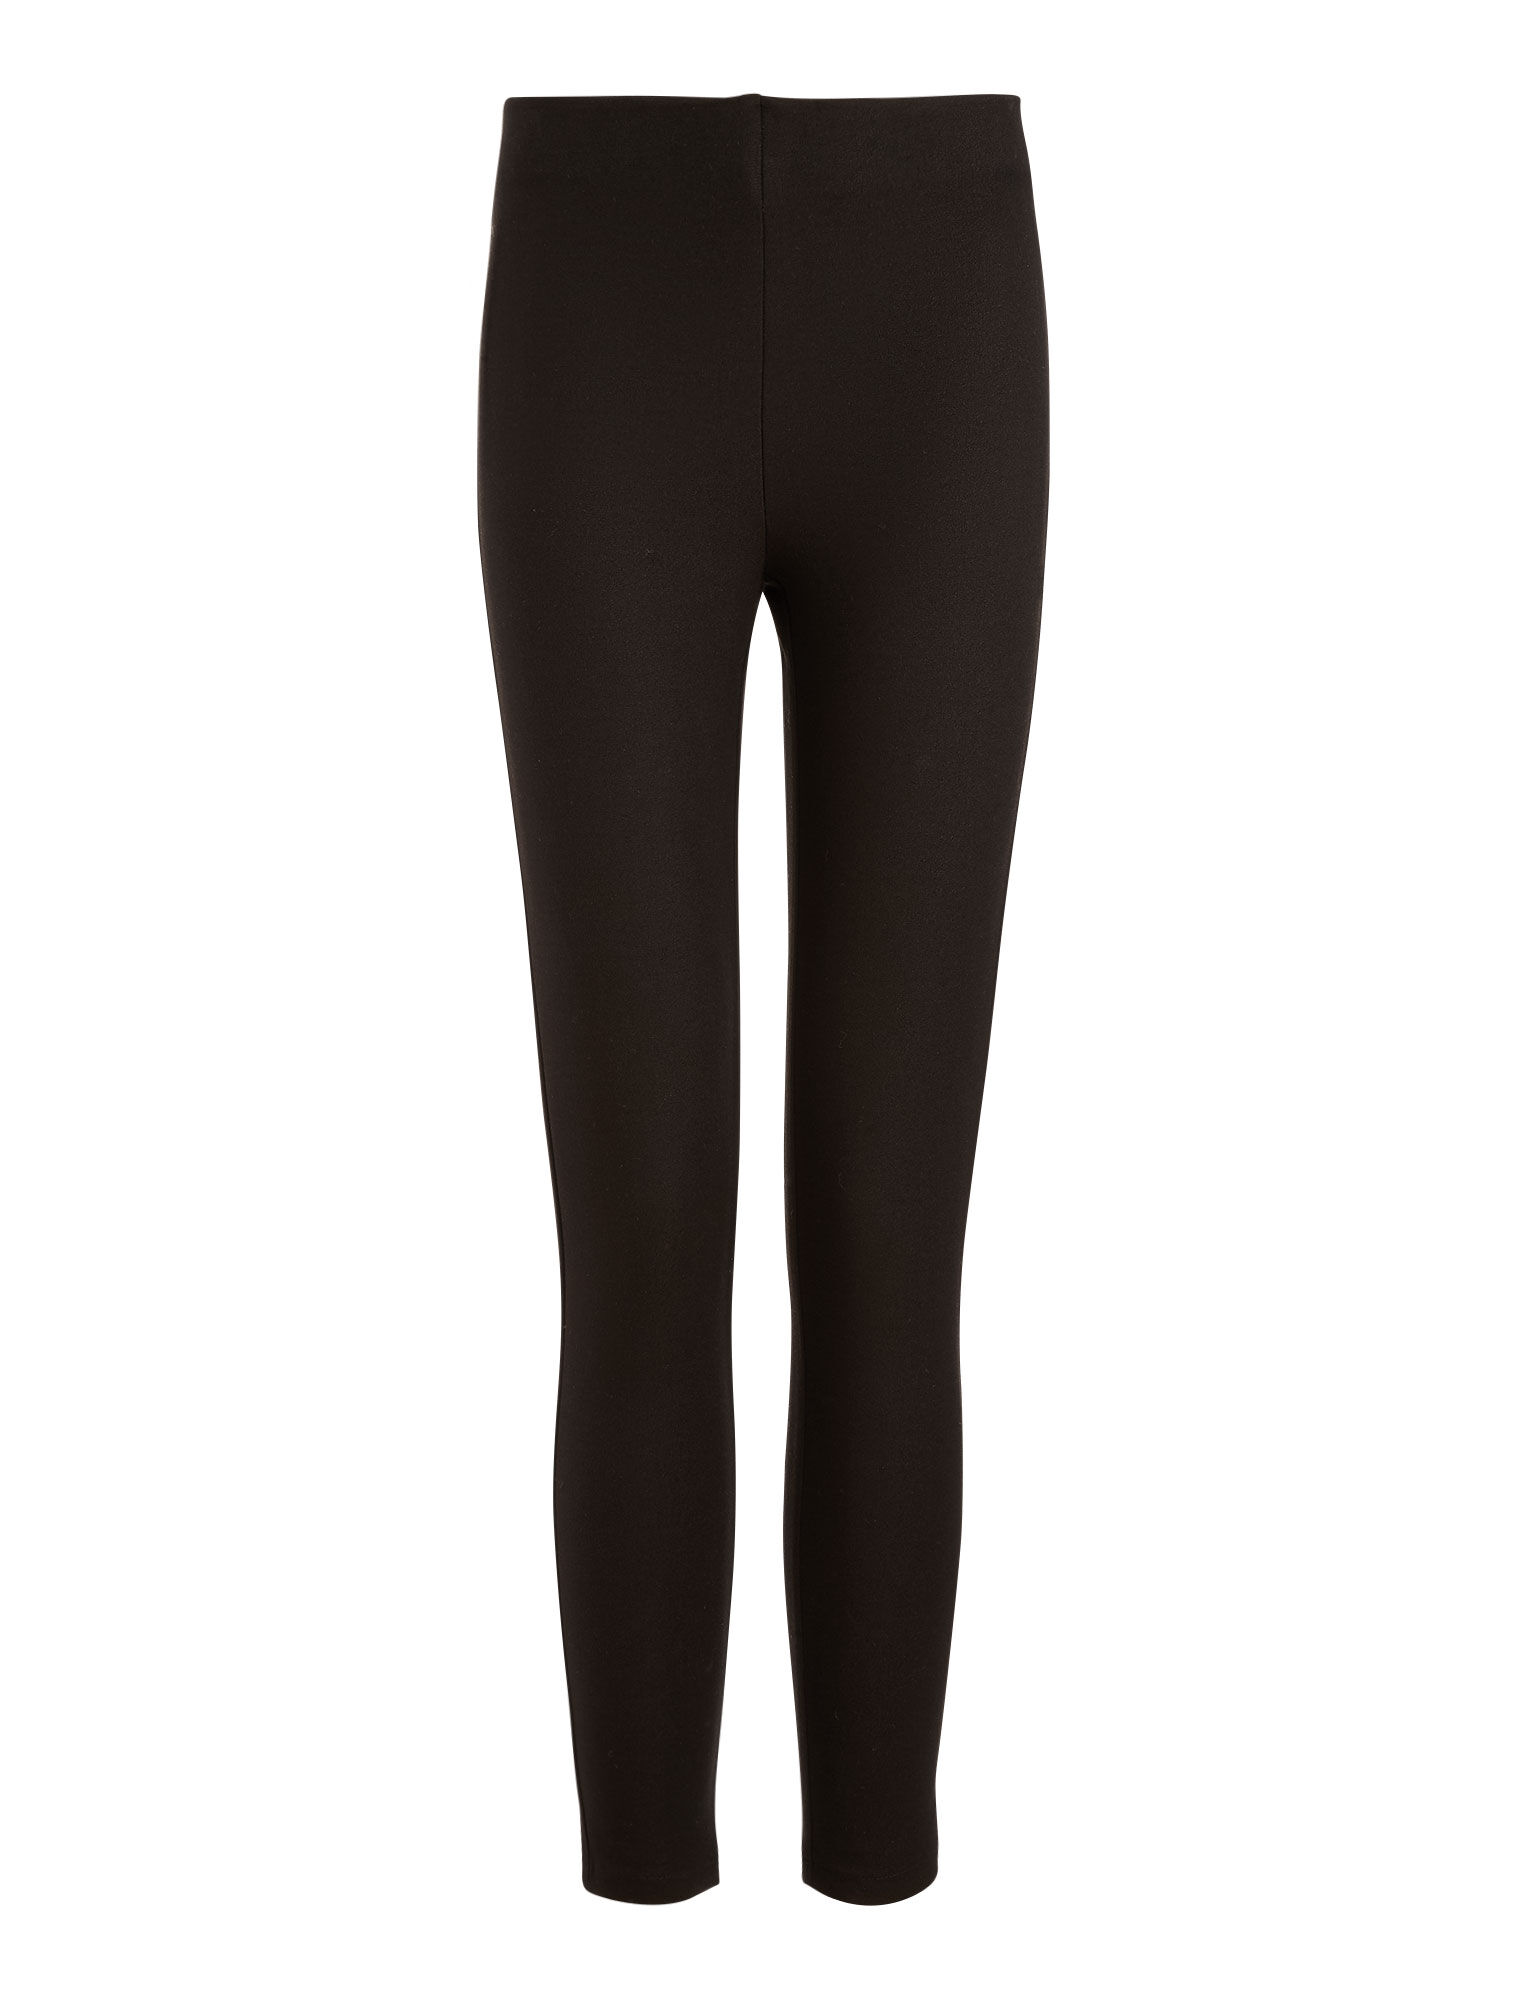 Joseph, Nitro Gabardine Stretch Trousers, in BLACK